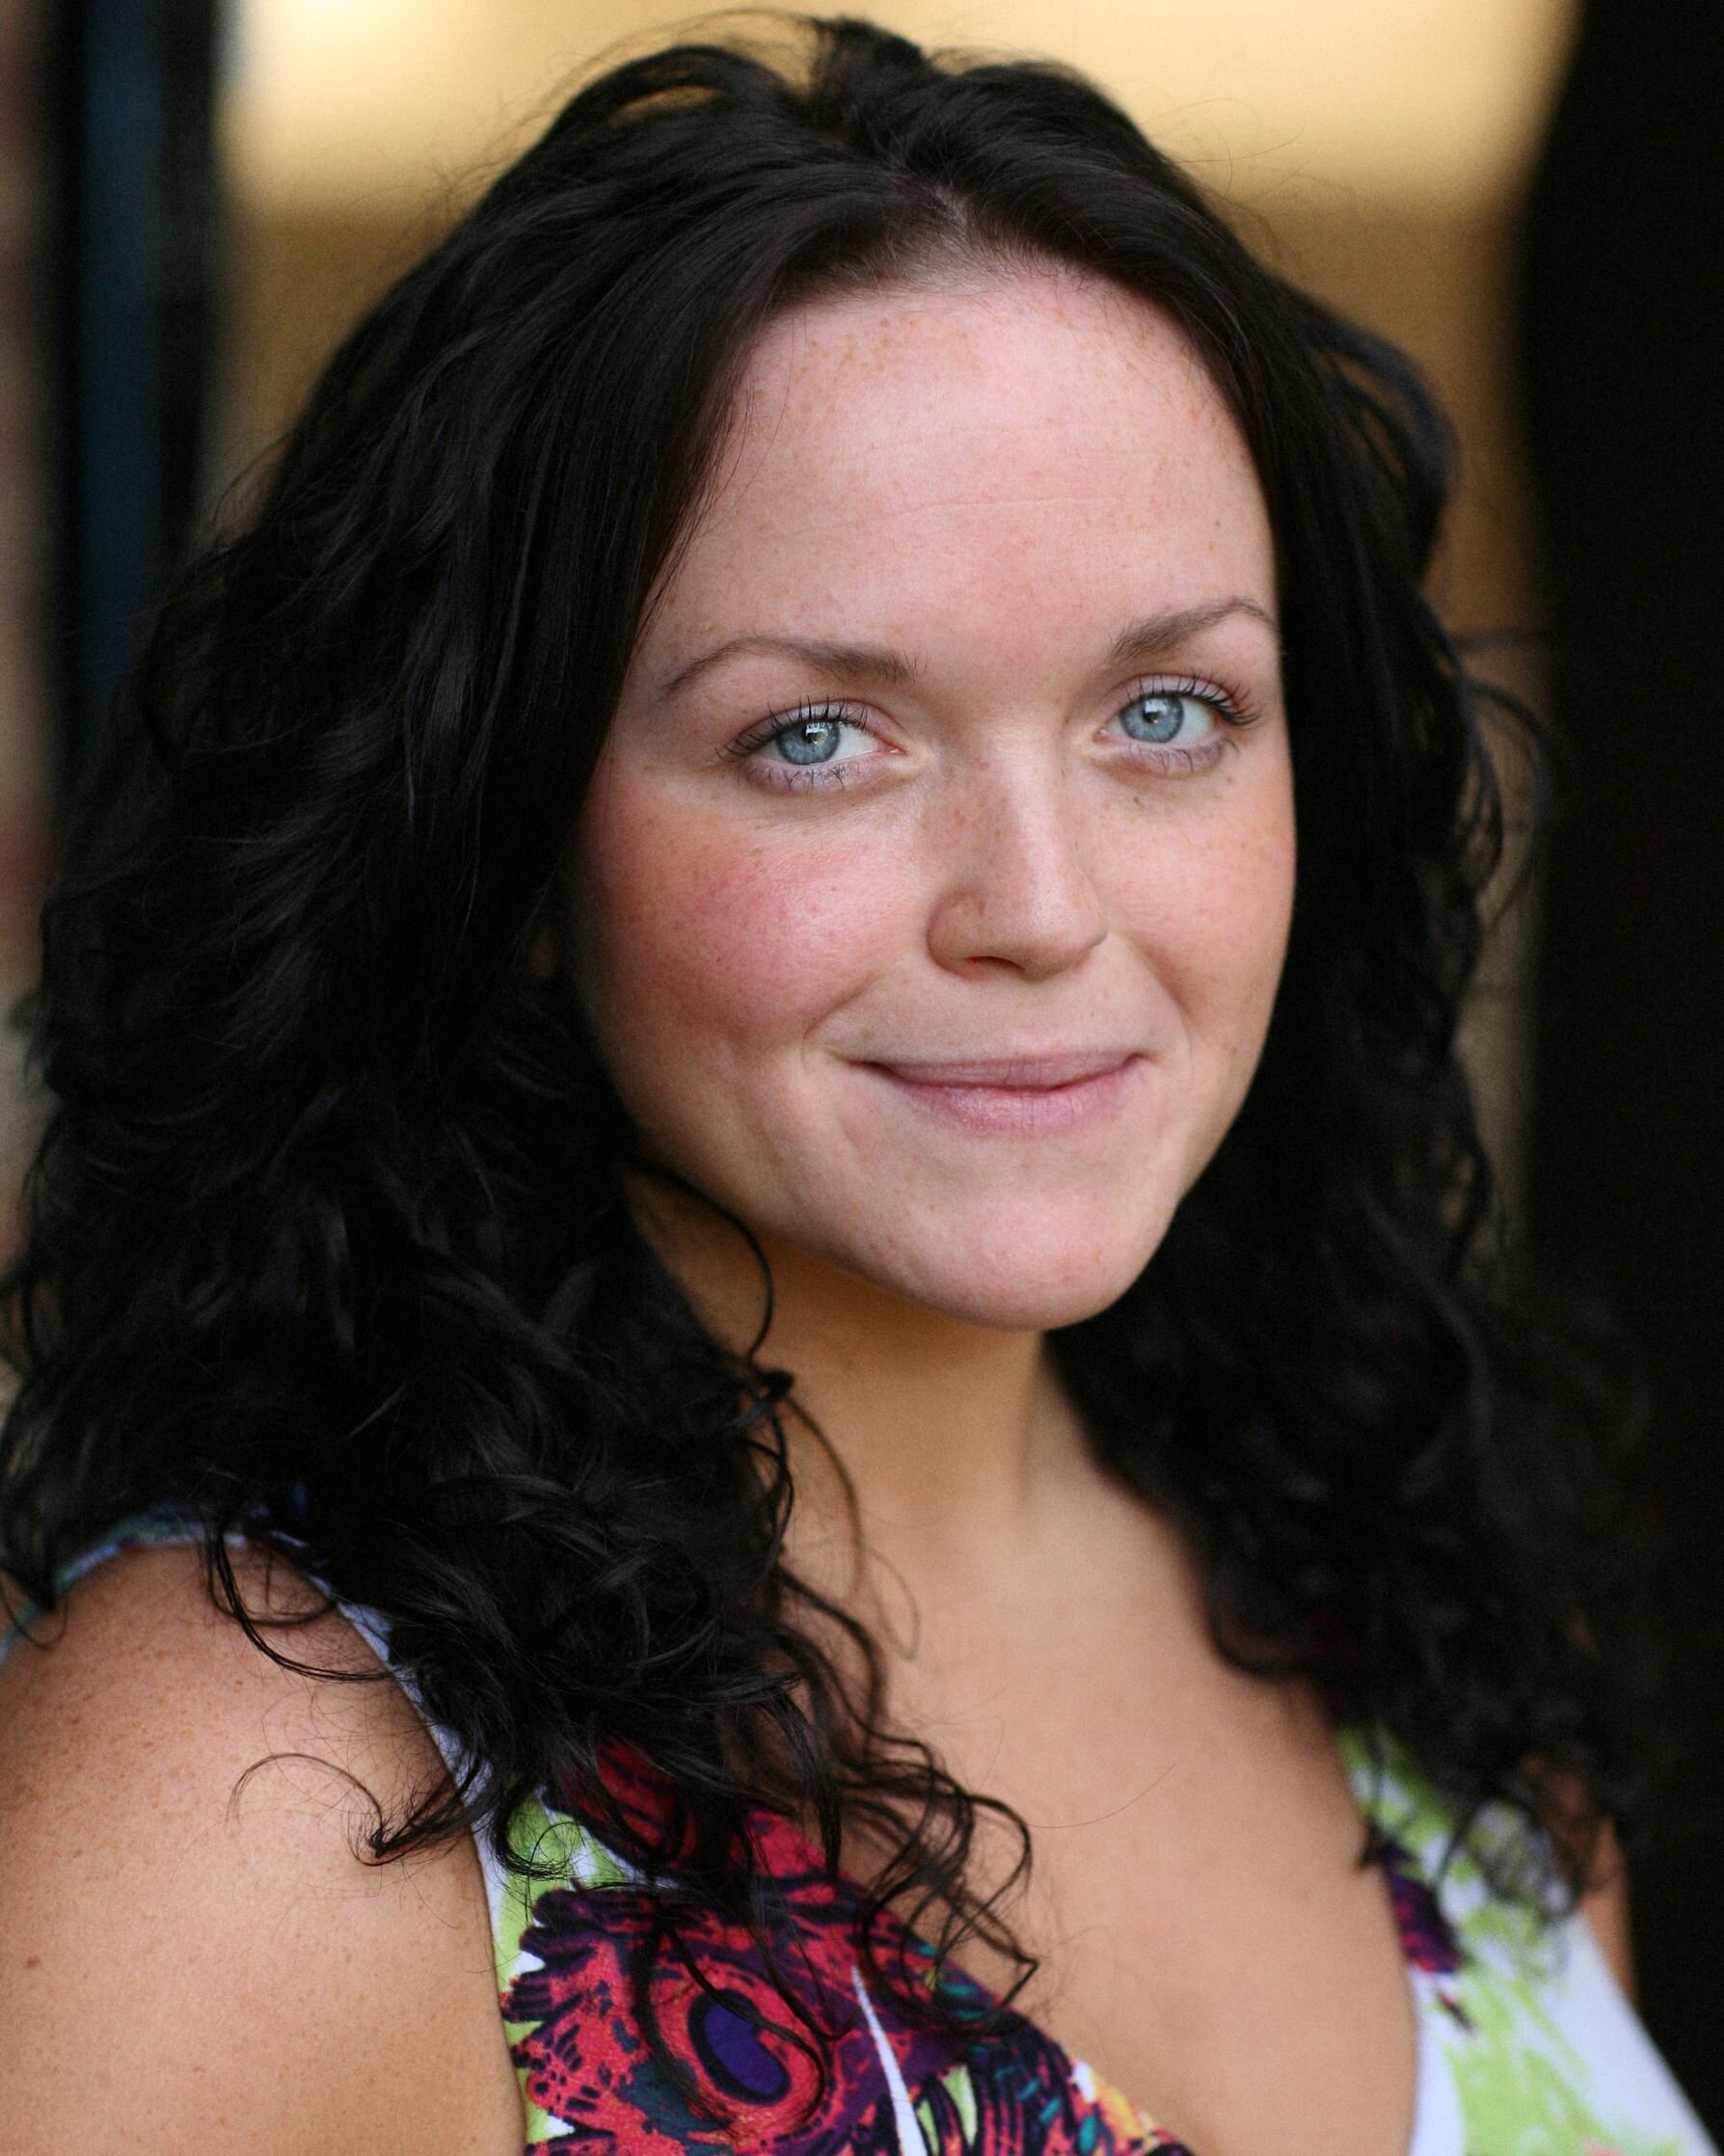 Rebecca Travers Colour Extra Headshot 1.jpg